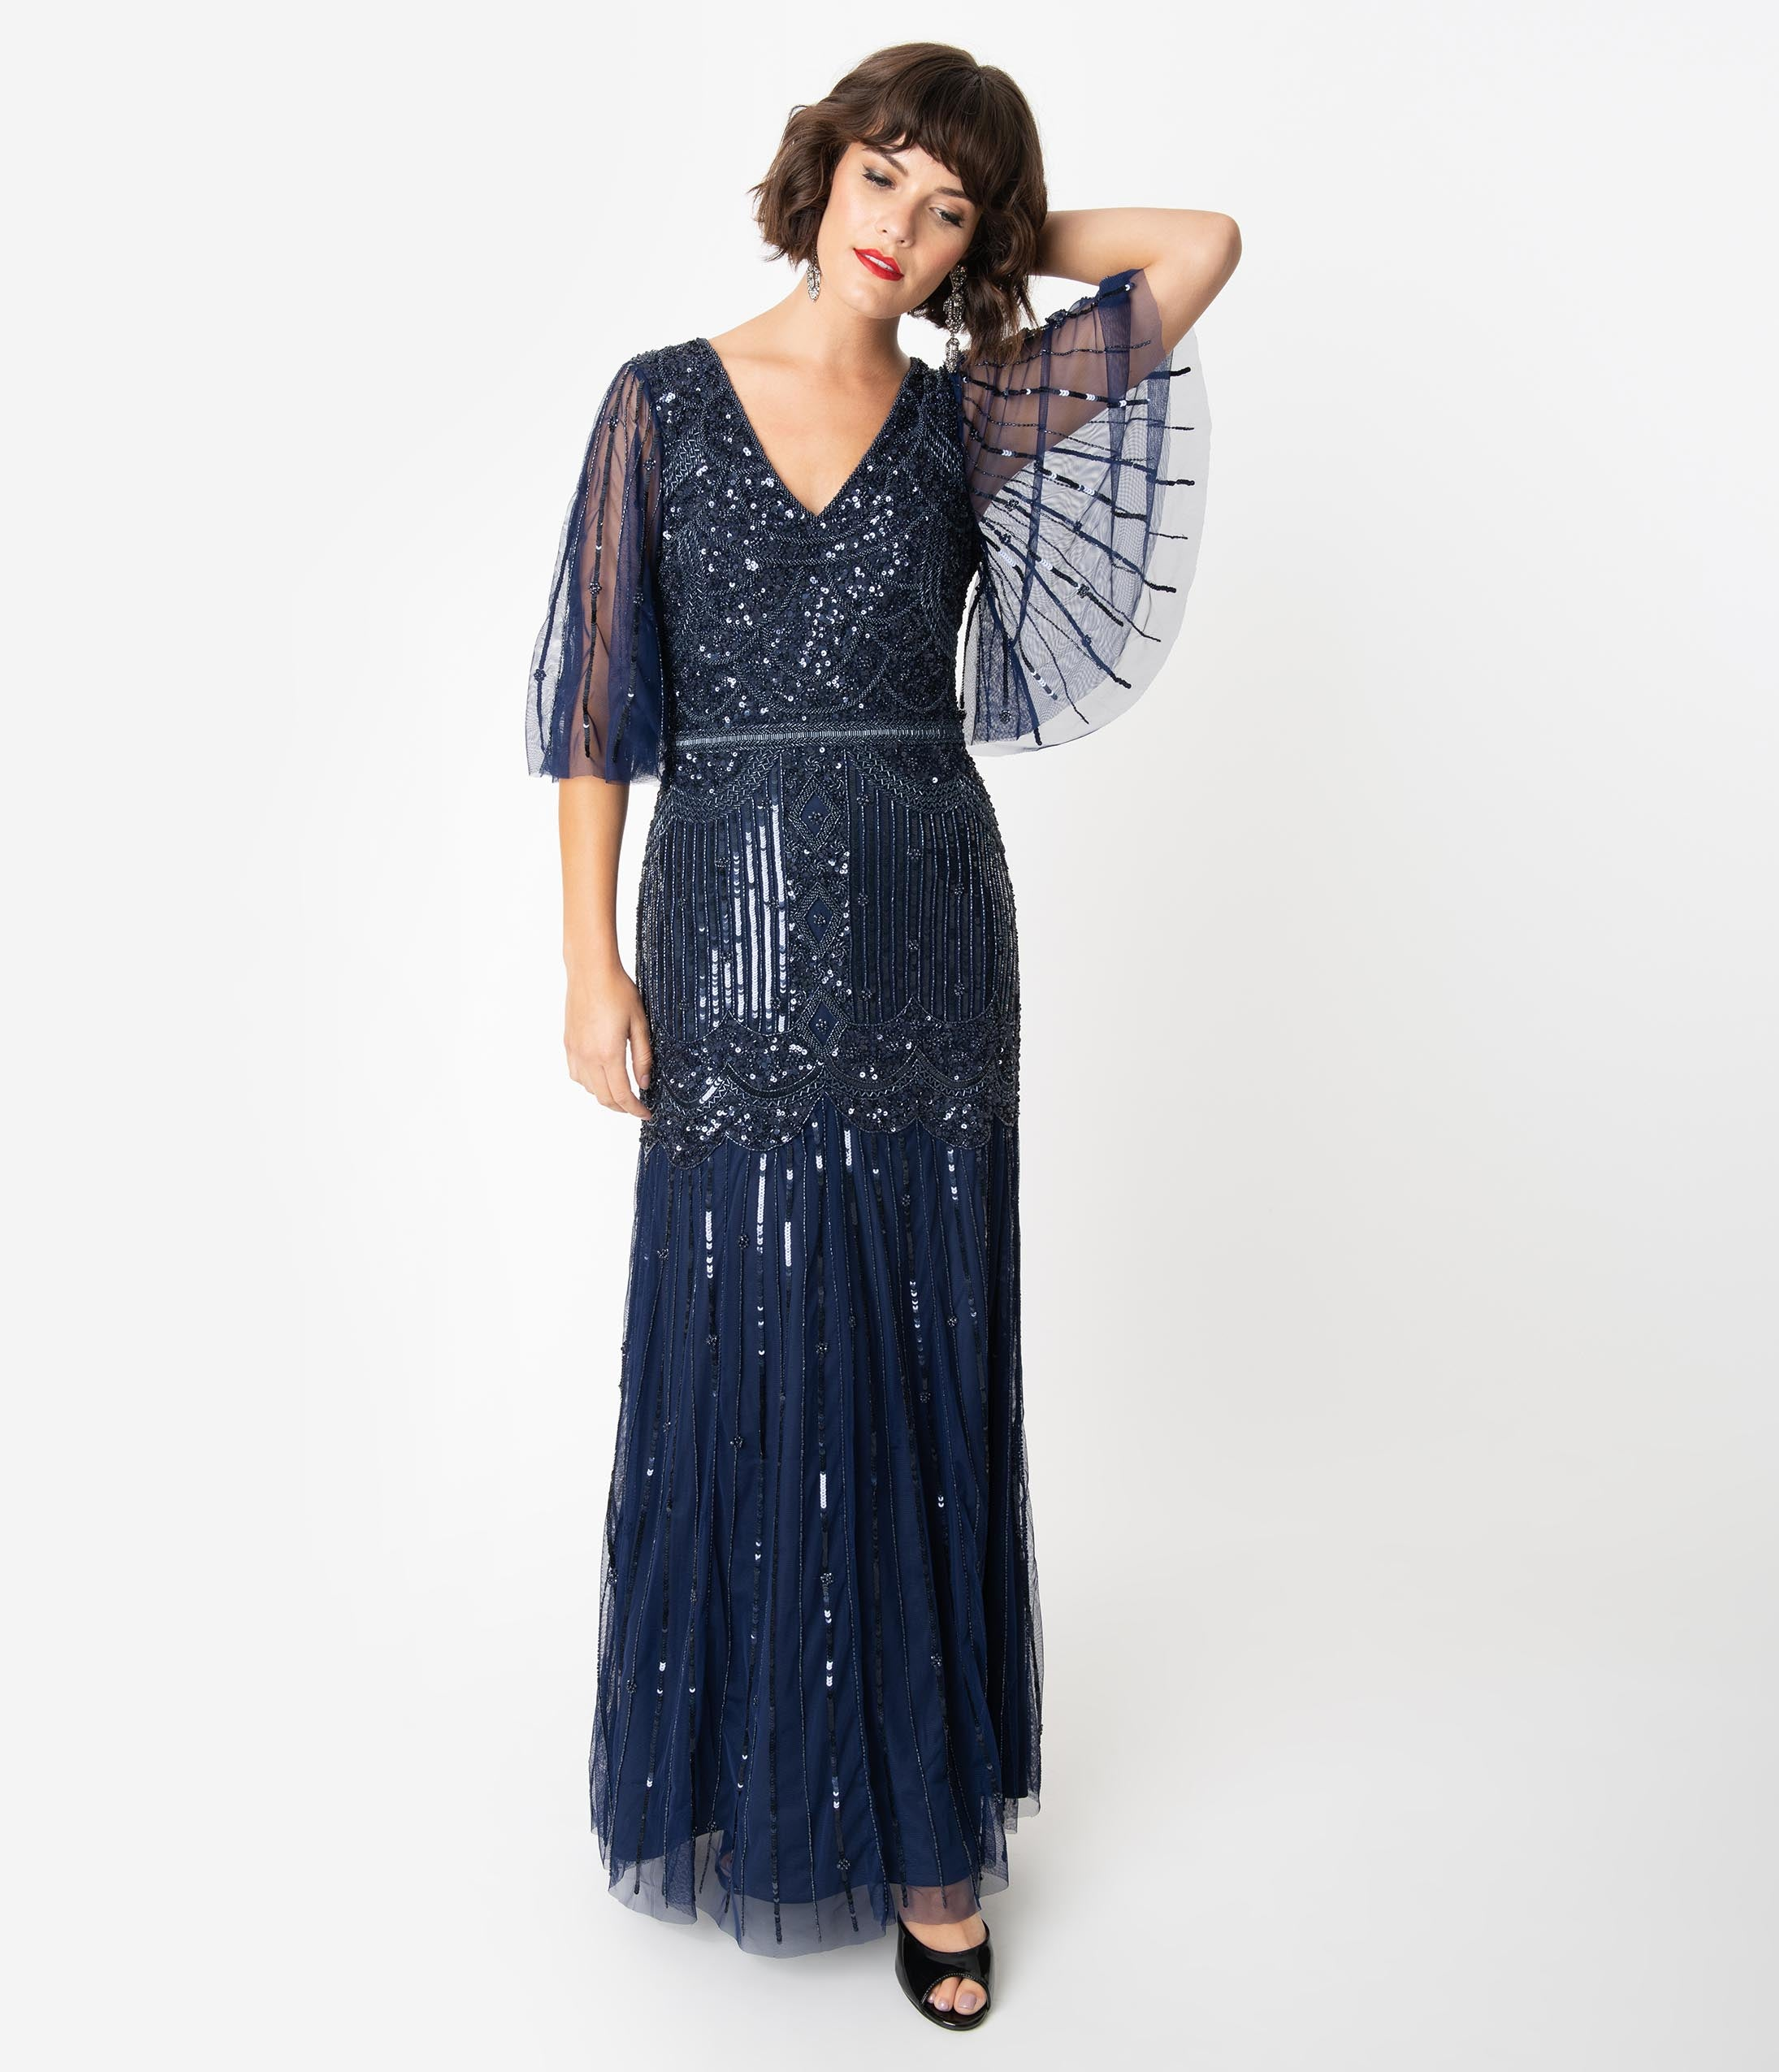 Best 1920s Prom Dresses – Great Gatsby Style Gowns Navy Blue Sequin  Beaded Angel Sleeve Bettina Long Flapper Dress $268.00 AT vintagedancer.com